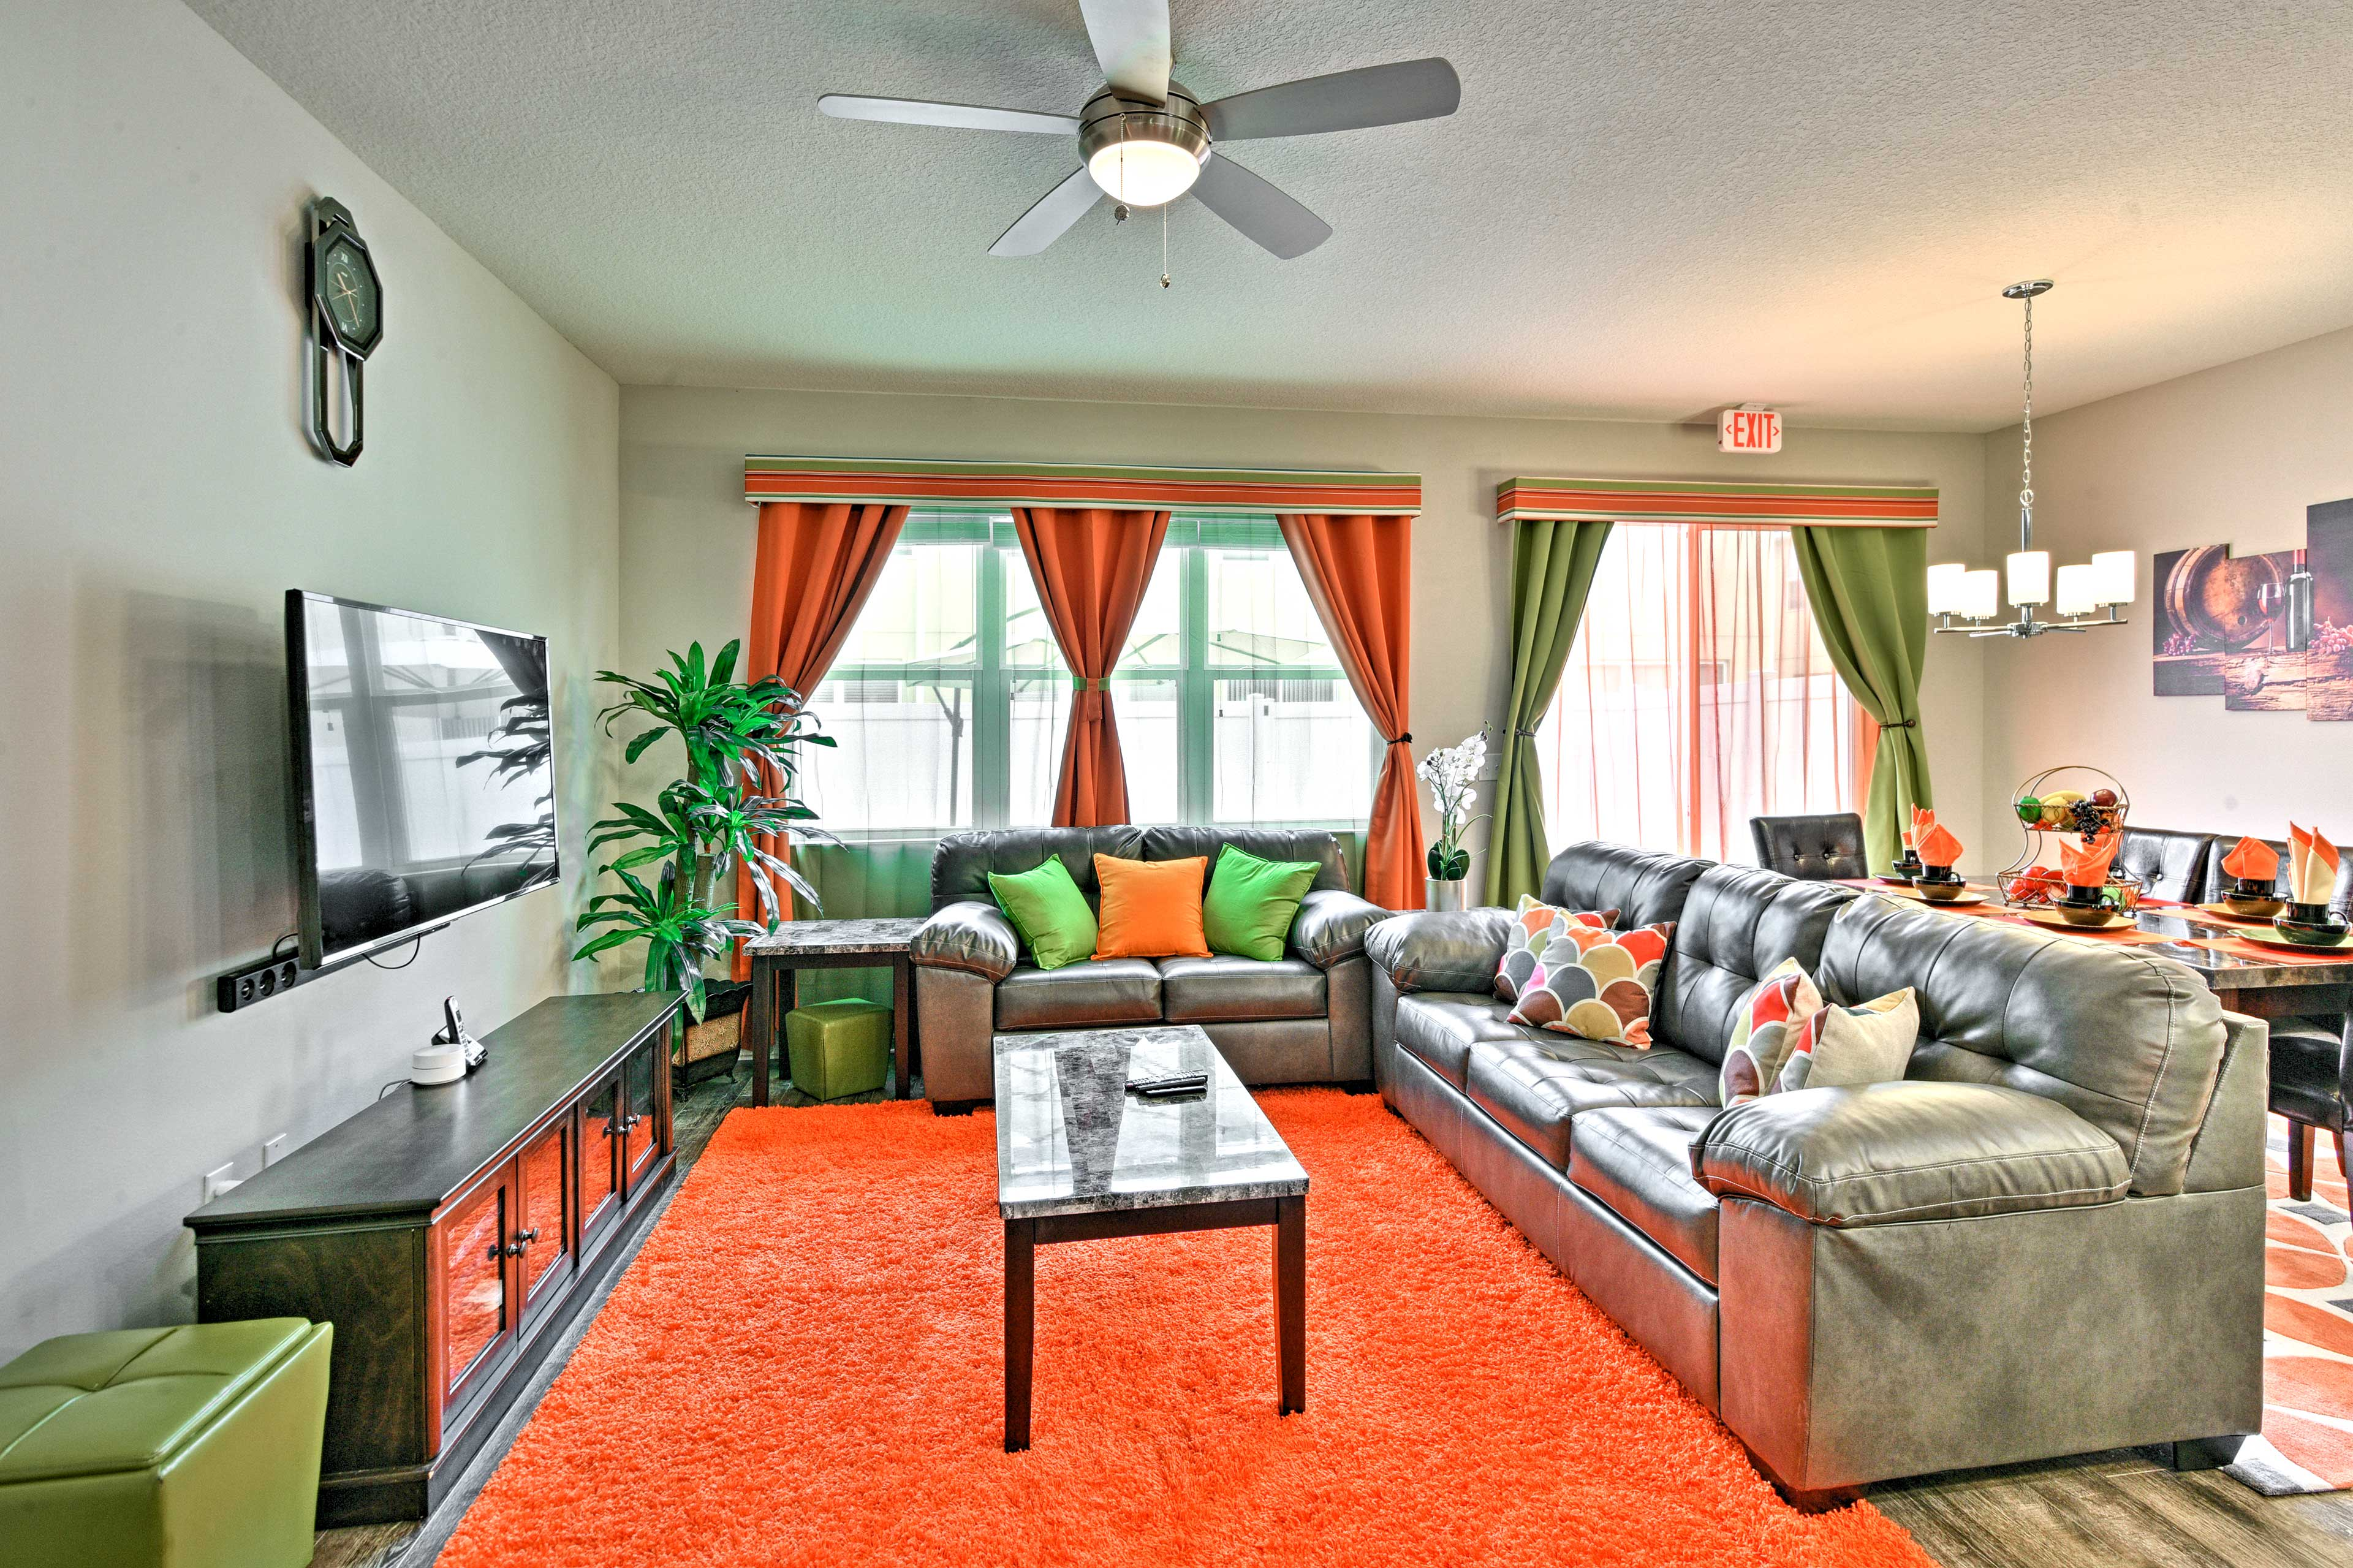 The living room is equipped with a flat-screen Smart TV - one of 3 in the home.